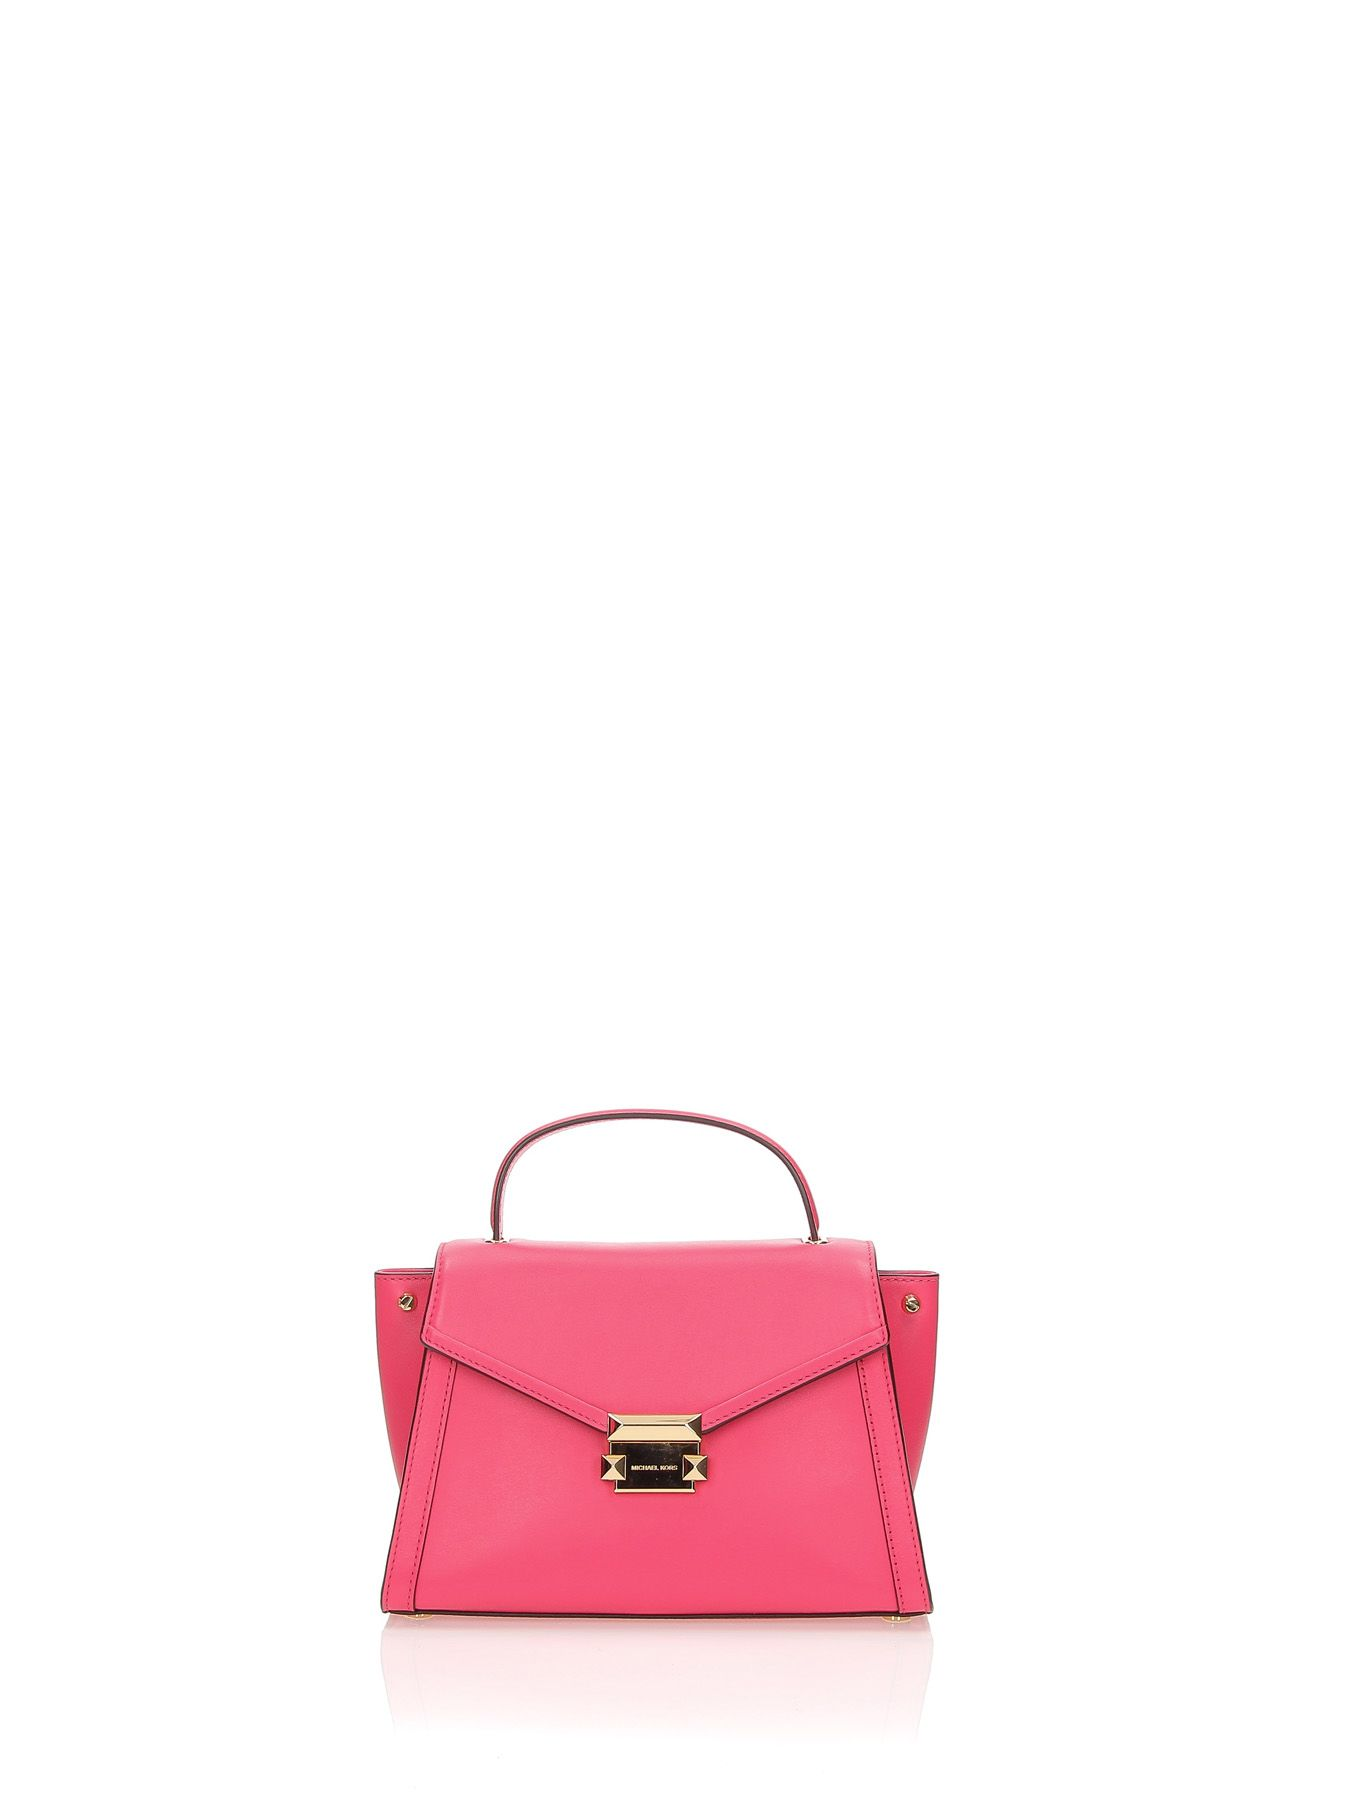 M Group Md Th Satchel, Pink